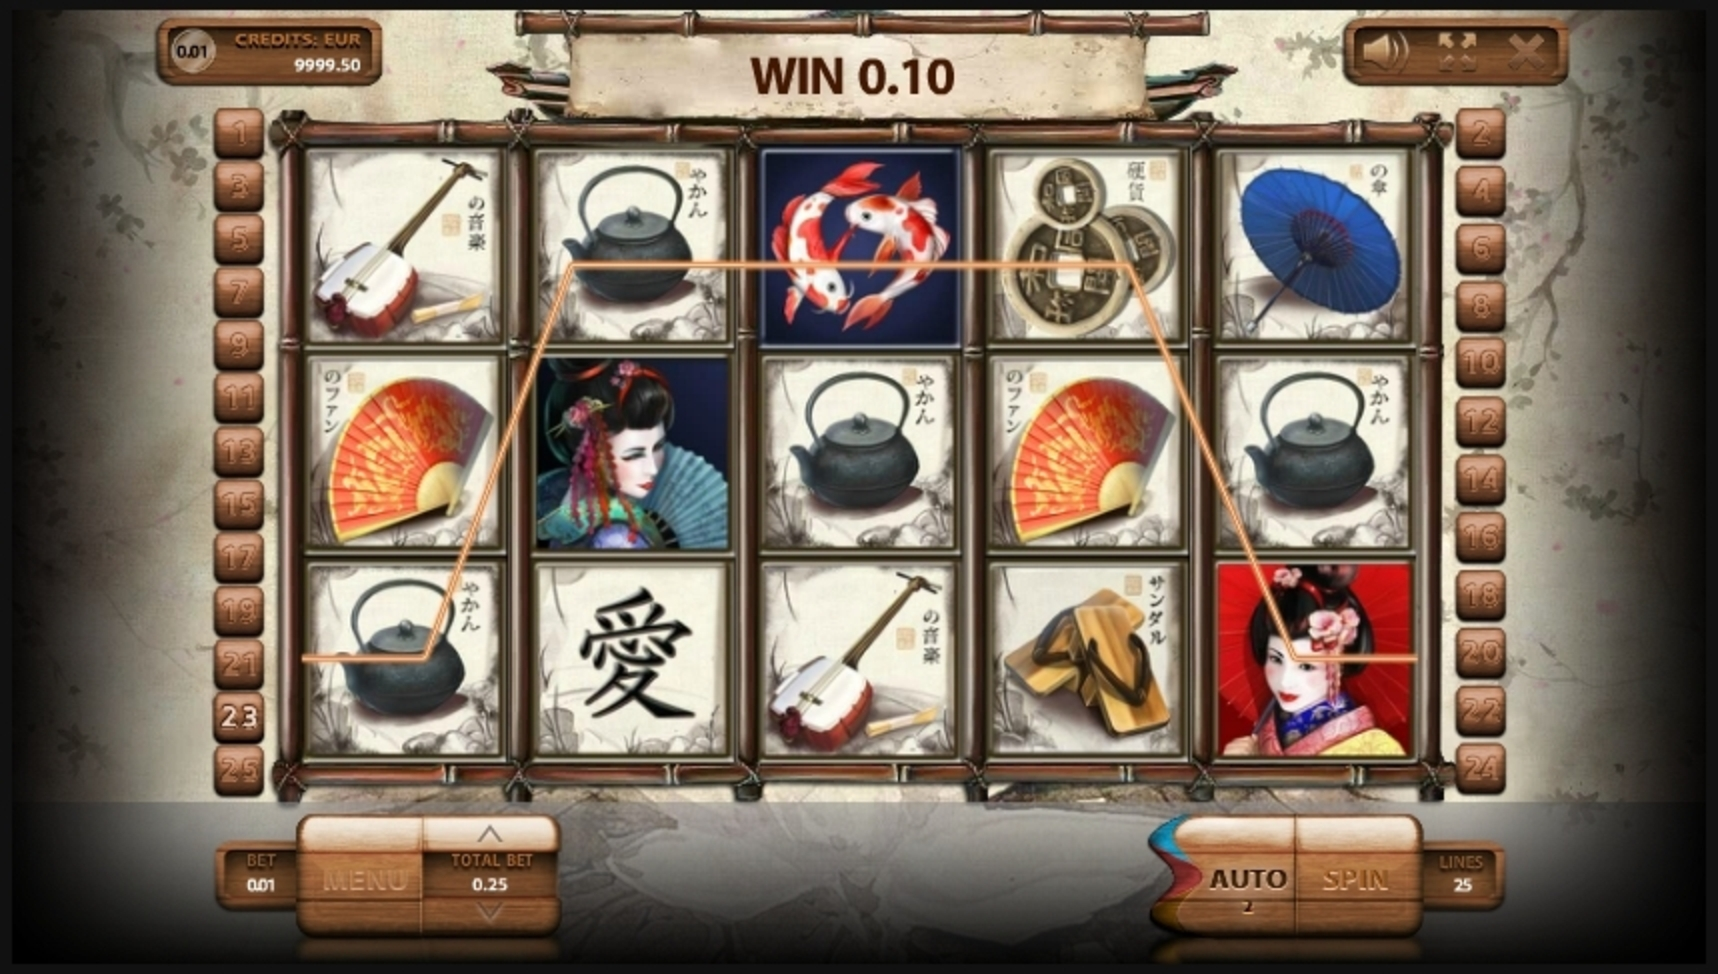 Win Money in Geisha Free Slot Game by Endorphina